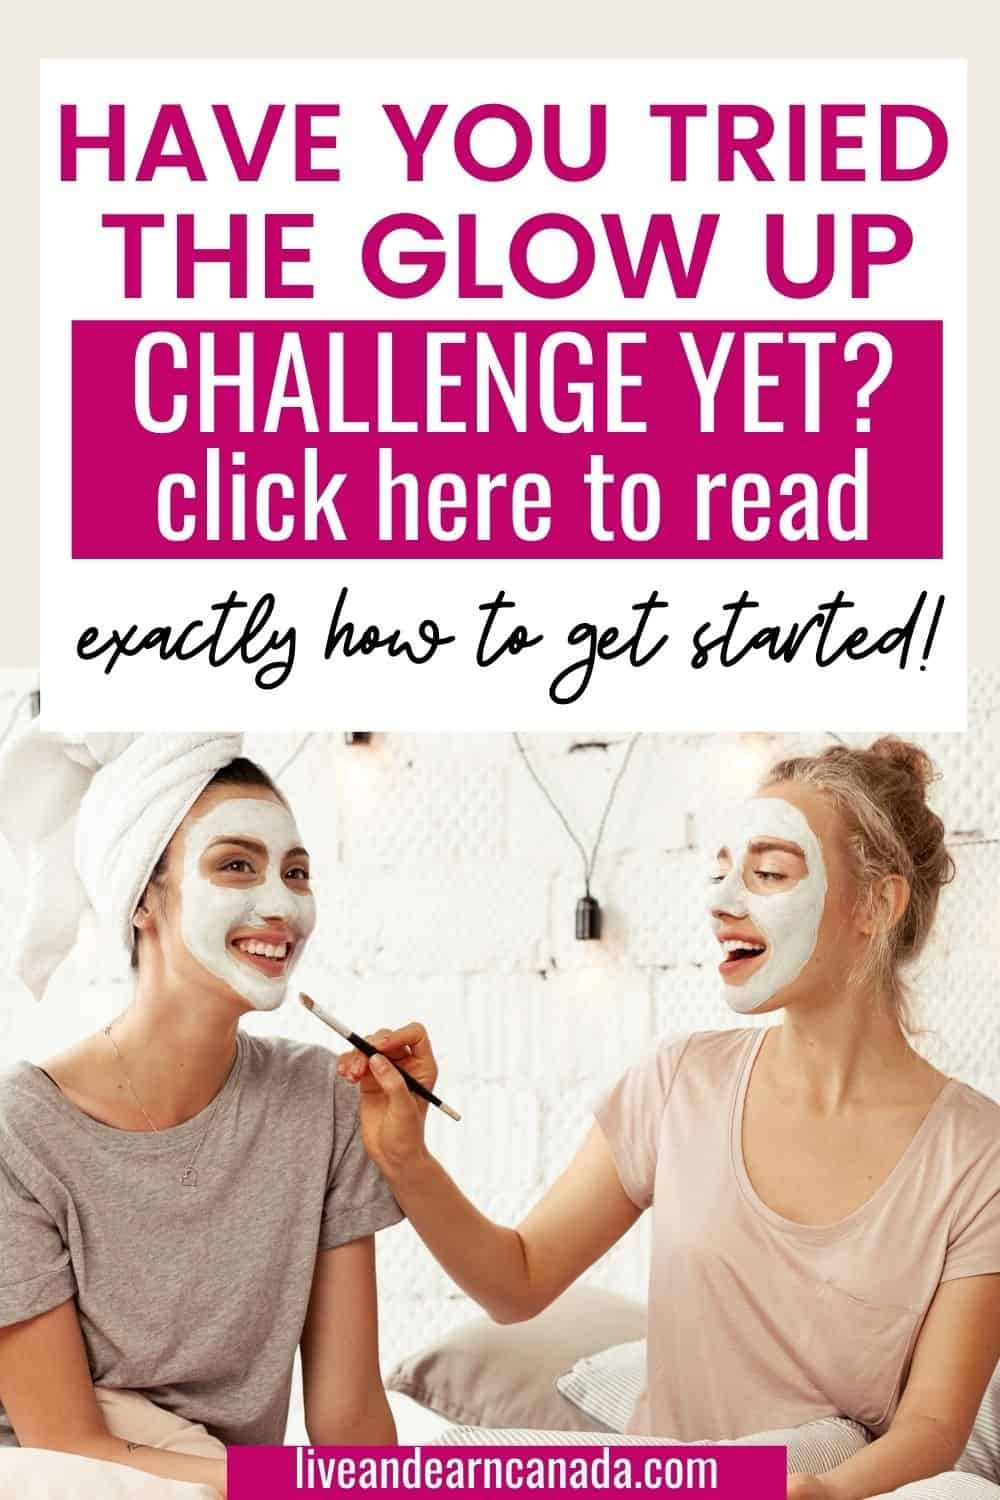 Glow Up With These Beauty Hacks That'll Make You Pretty, Naturally! how to be beautiful, how to be more attractive, glow up tips, Glow up plan, Glow up routine, Beauty makeover, Glow up transformation, Glo up tips, glow up list, Girl life hacks, Back to school, Beauty Improvement, Become pretty, Improve your appearance, beauty hacks, Beauty tips #beauty #pretty #glowup #glowuptips #hoetips #looks How to be pretty naturally, how to look beautiful with or without makeup and get glowing skin. Glow up overnight #glowup #beautytips #makeuptips #howtobepretty